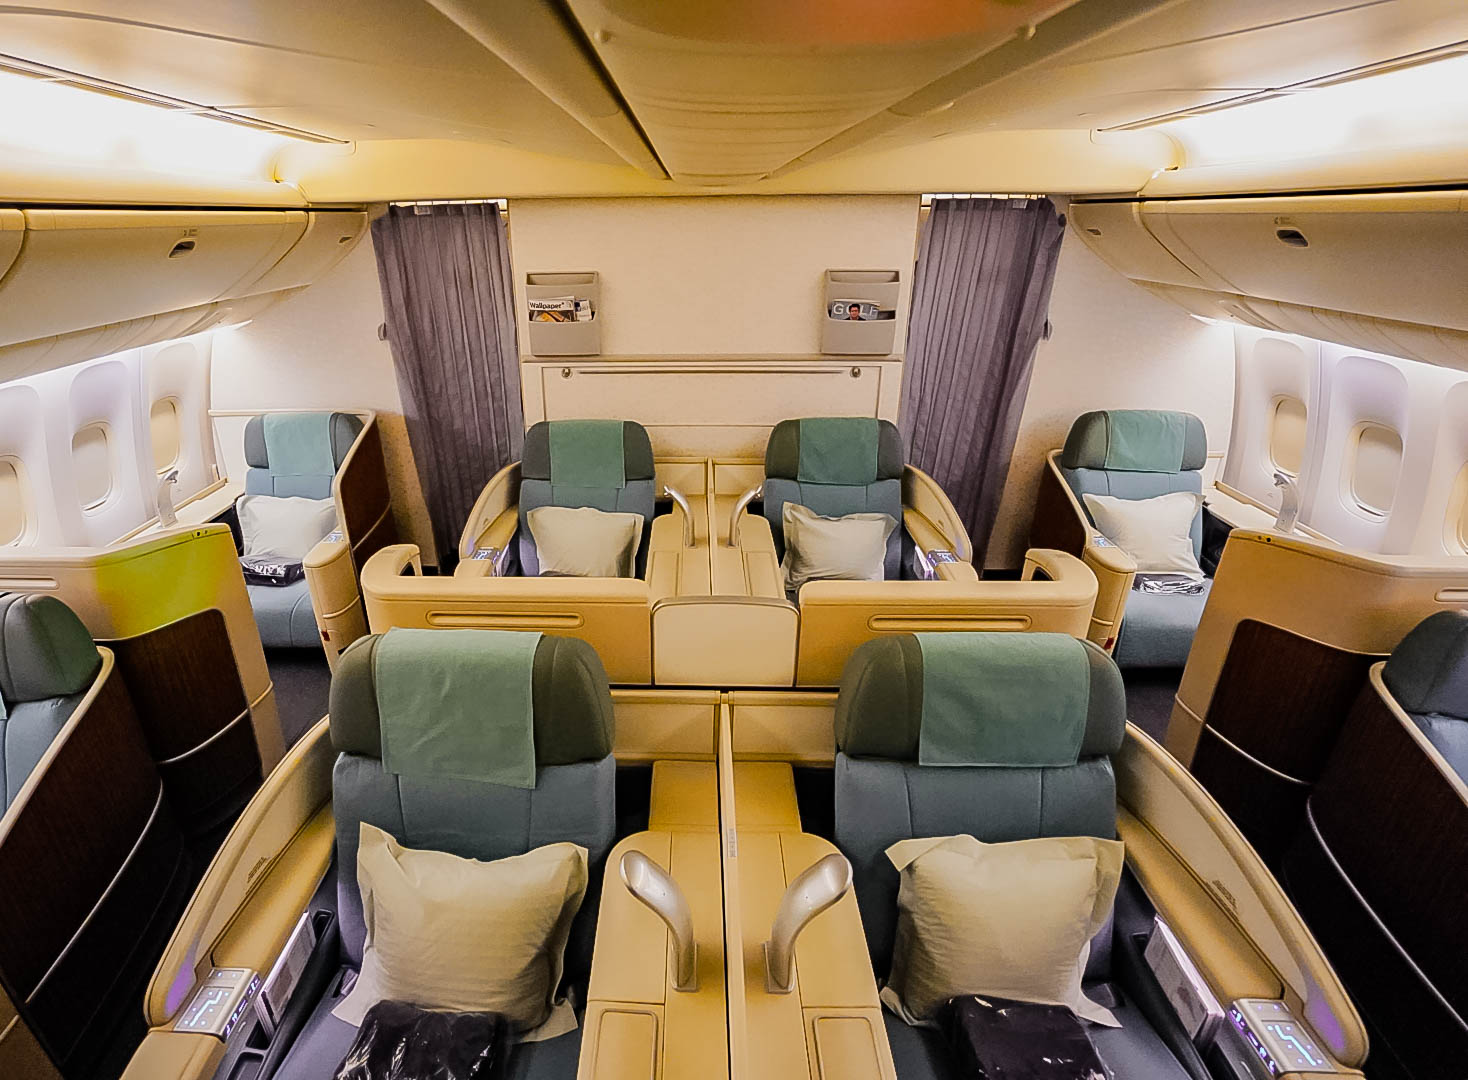 Korean Air Boeing 777-300ER First Class Review [SIN to ICN]